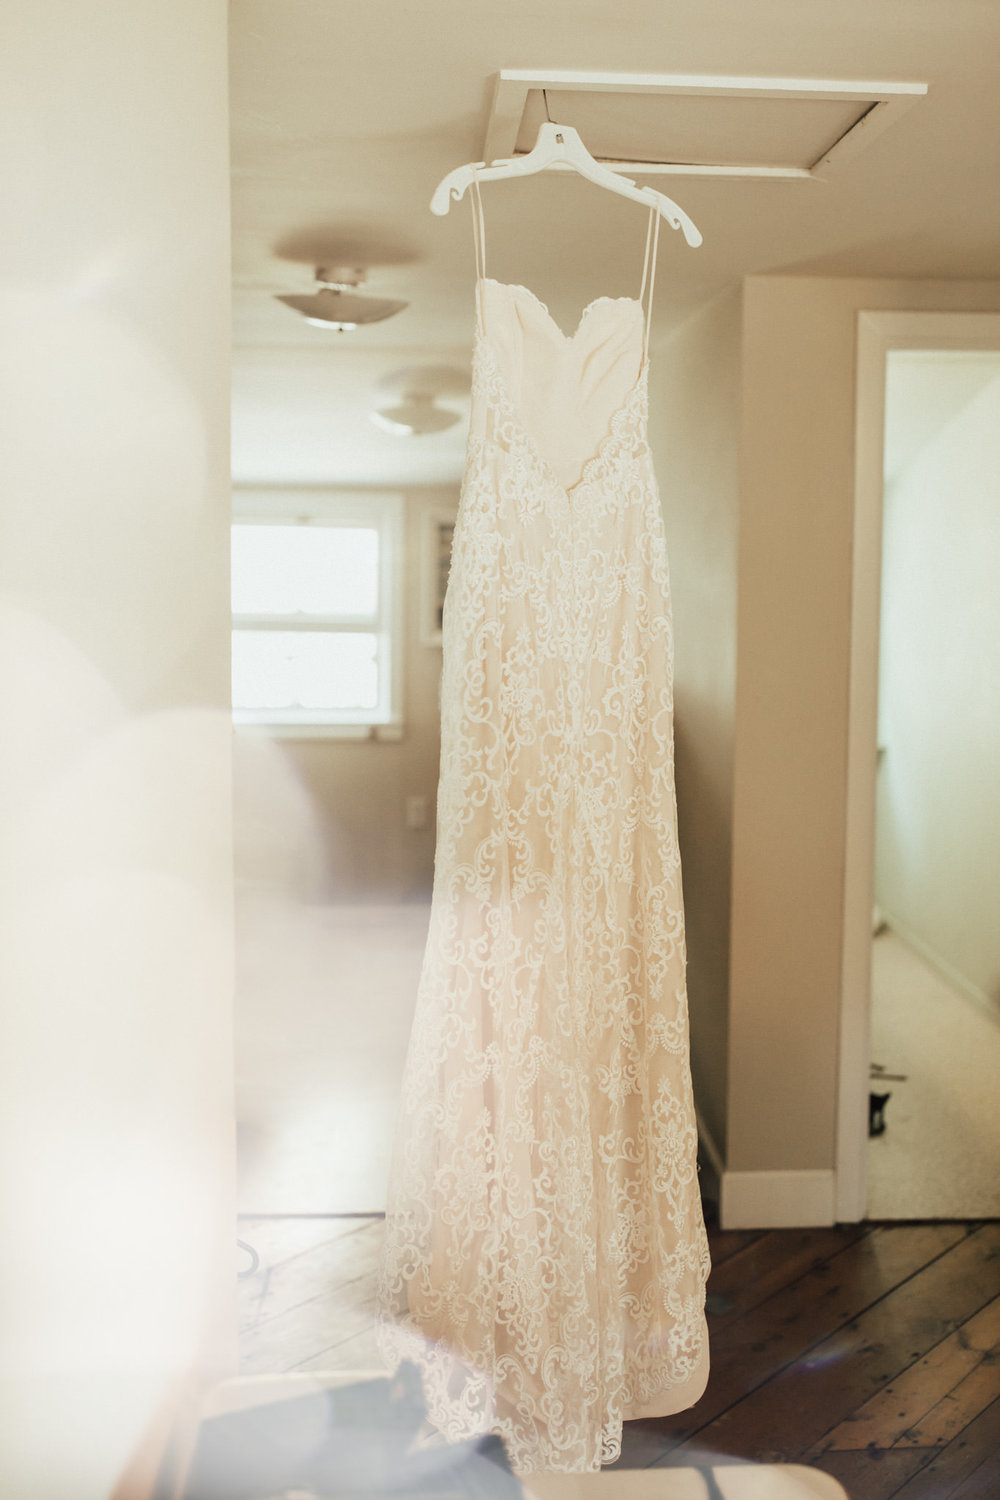 farmhousewedding-1.jpg